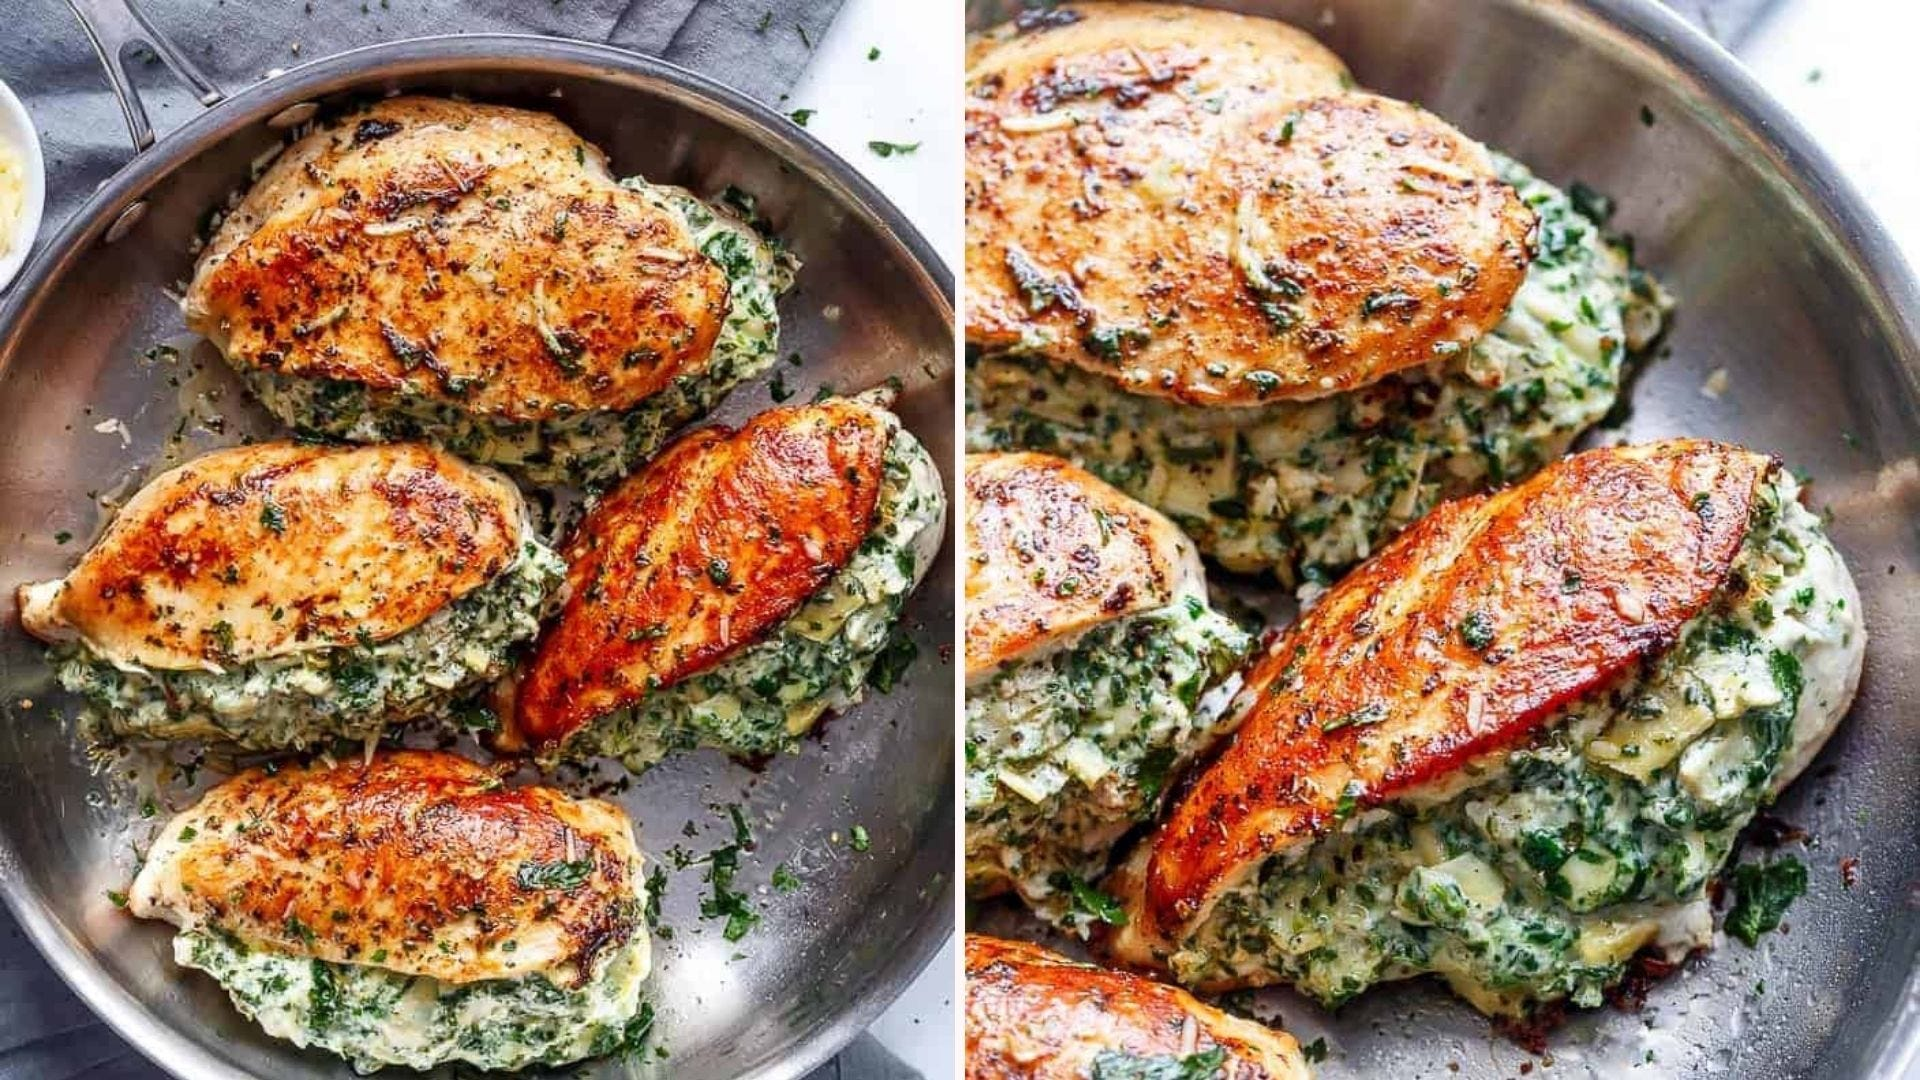 Two images of chicken stuffed with spinach and artichoke in a skillet.